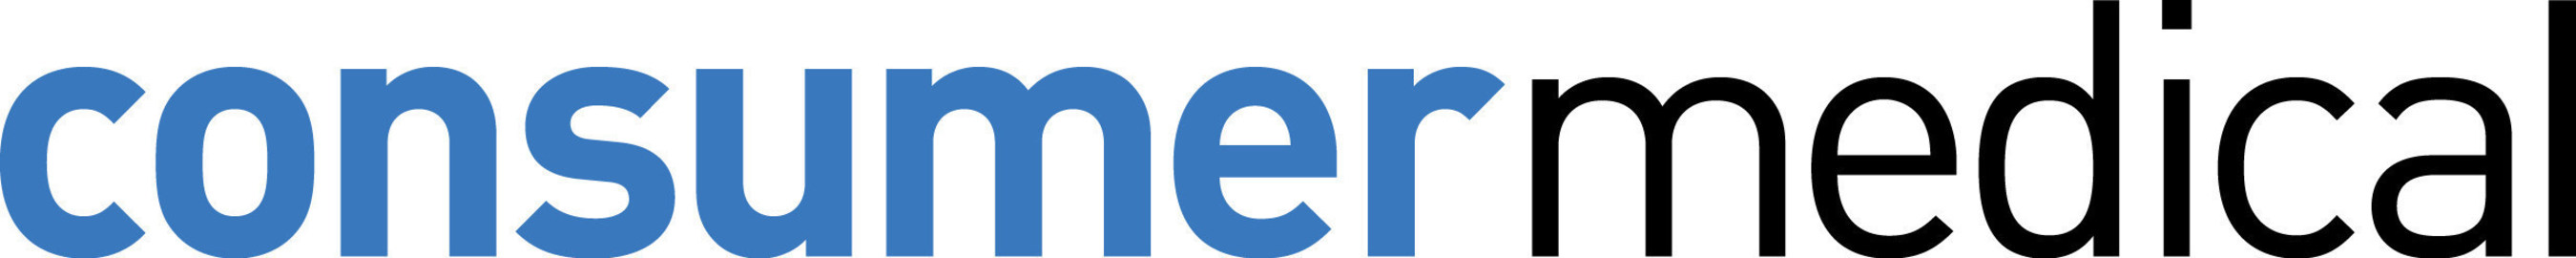 ConsumerMedical celebrates its 20th anniversary with evolutionary new branding.